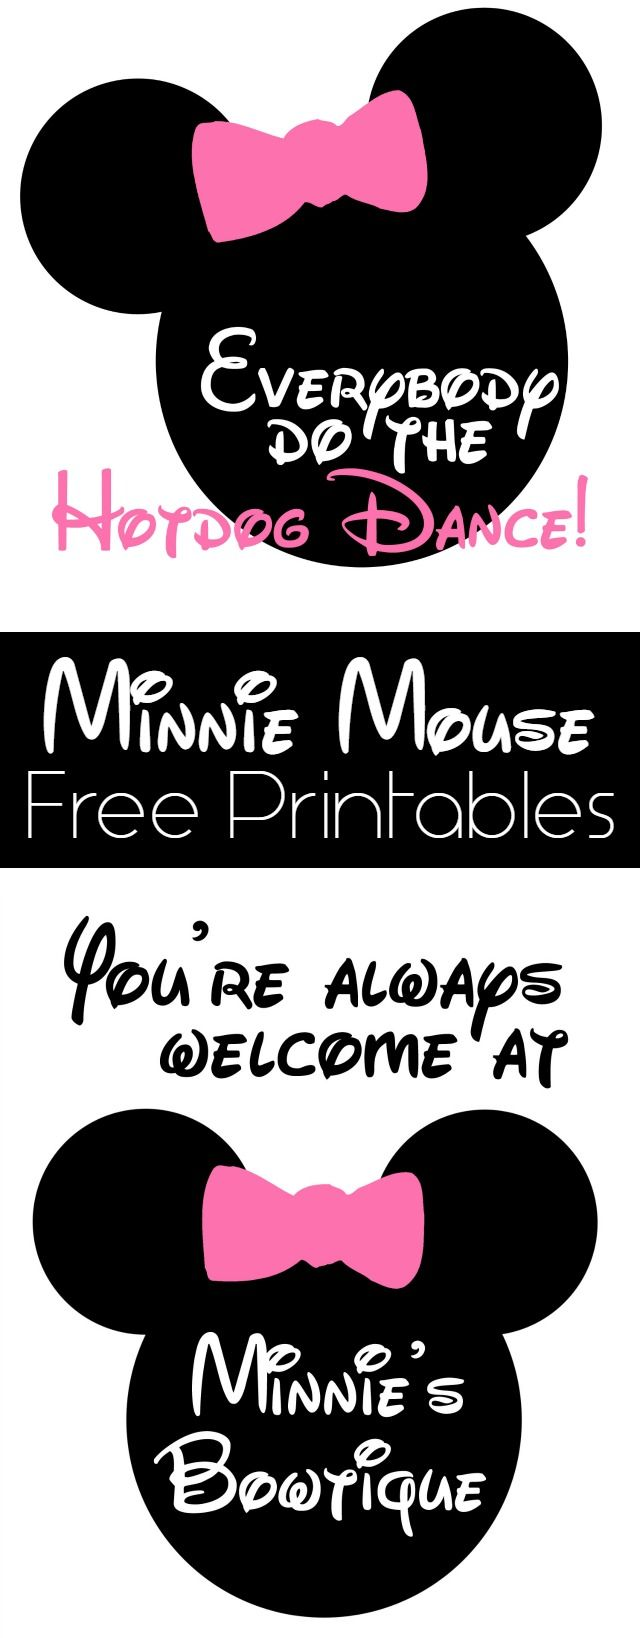 best 25 minnie mouse ideas on pinterest minnie mouse birthday party ideas mini mouse and. Black Bedroom Furniture Sets. Home Design Ideas